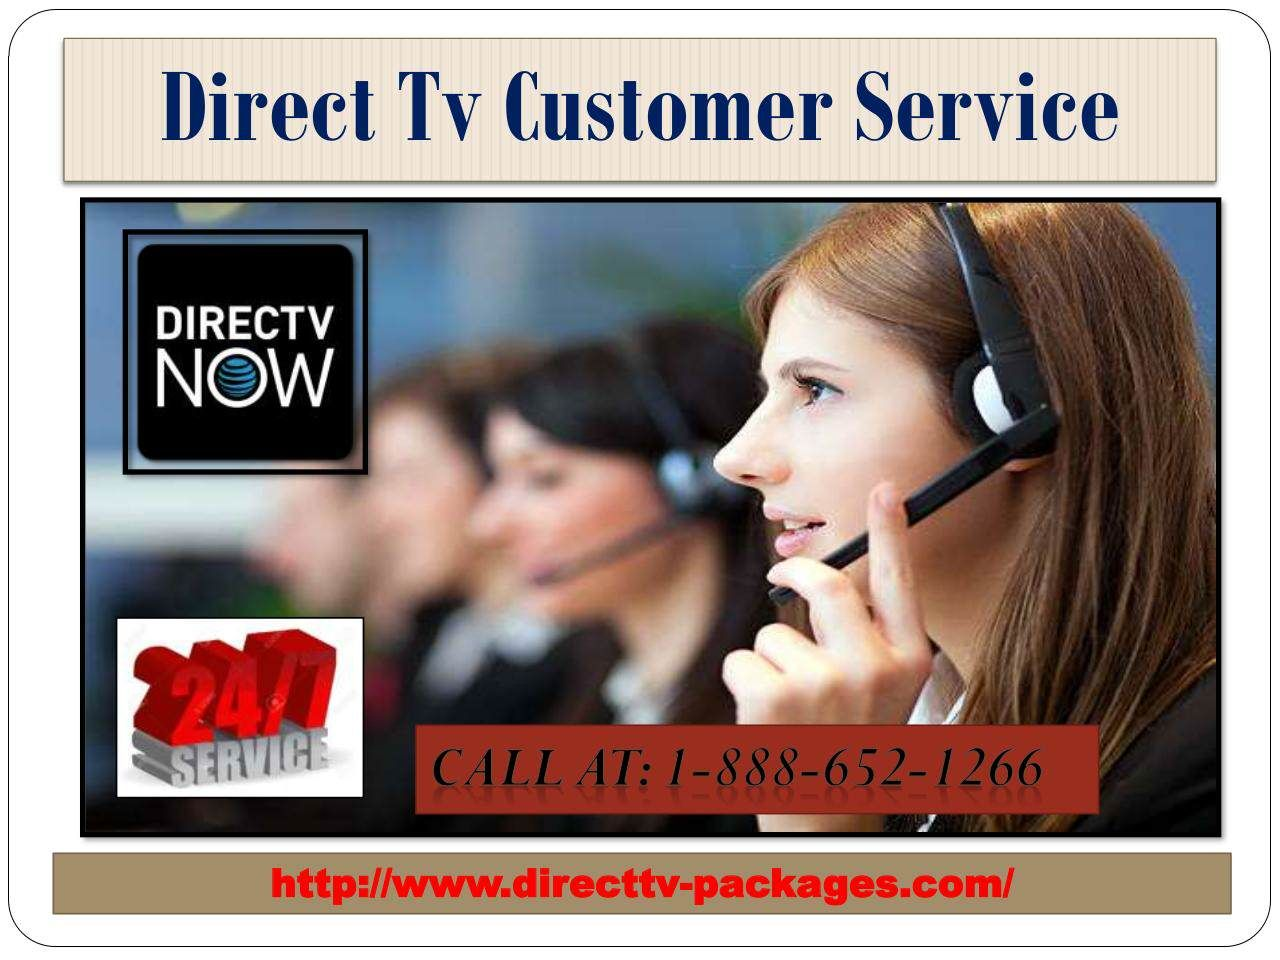 How do I watch Direct Tv Dish 18886521266 on my cell